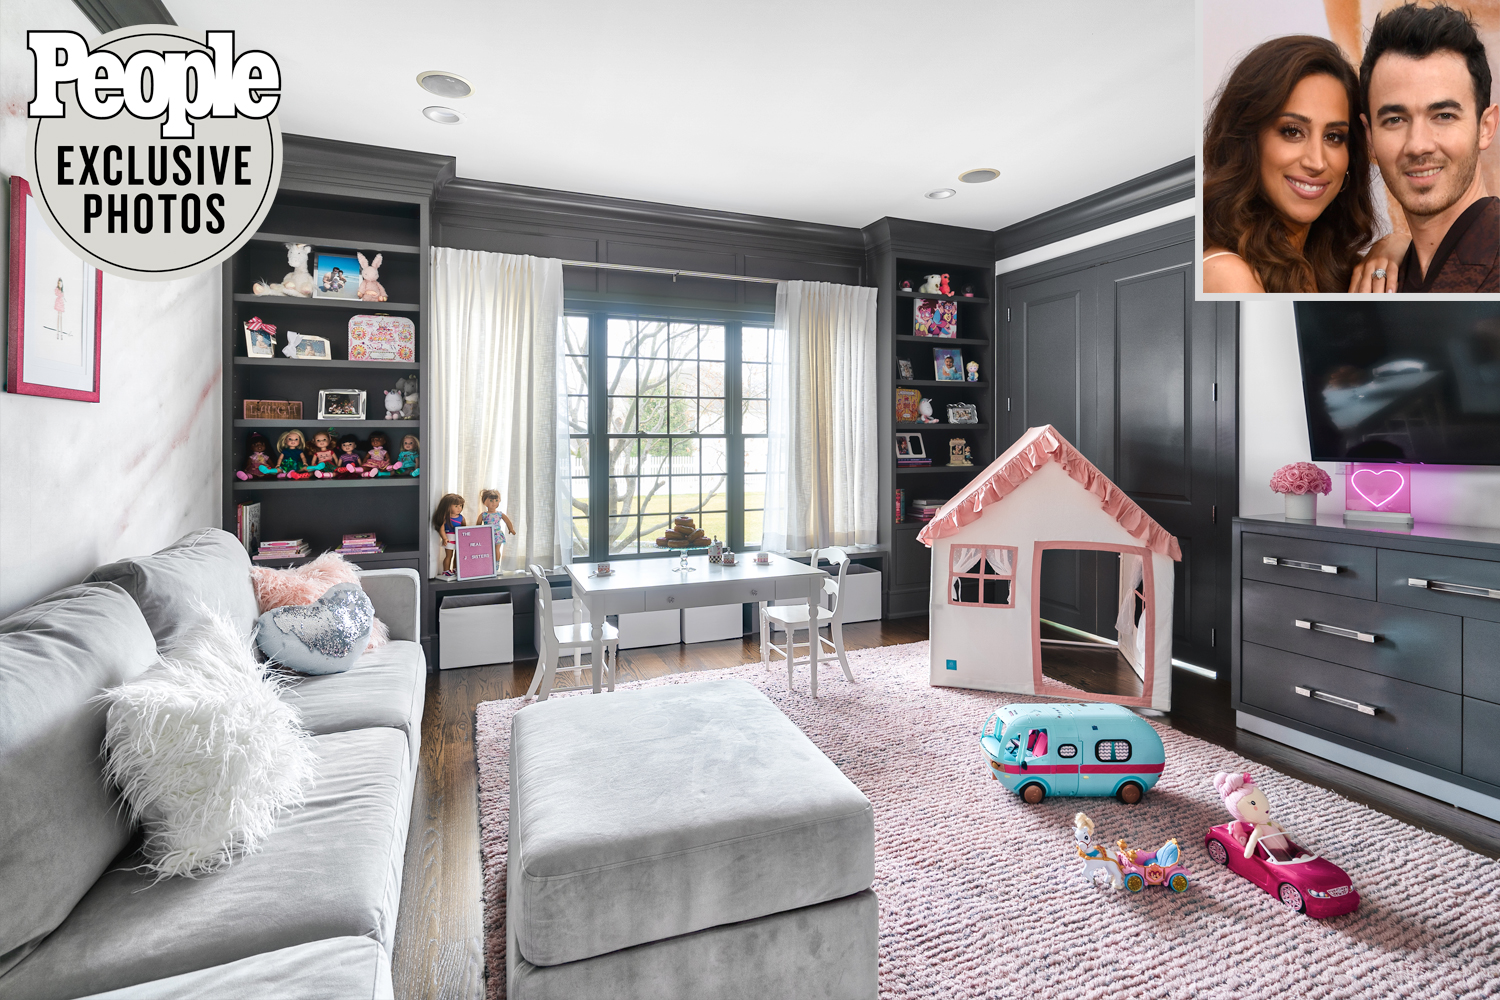 Kevin and Danielle Jonas daughters' Playroom